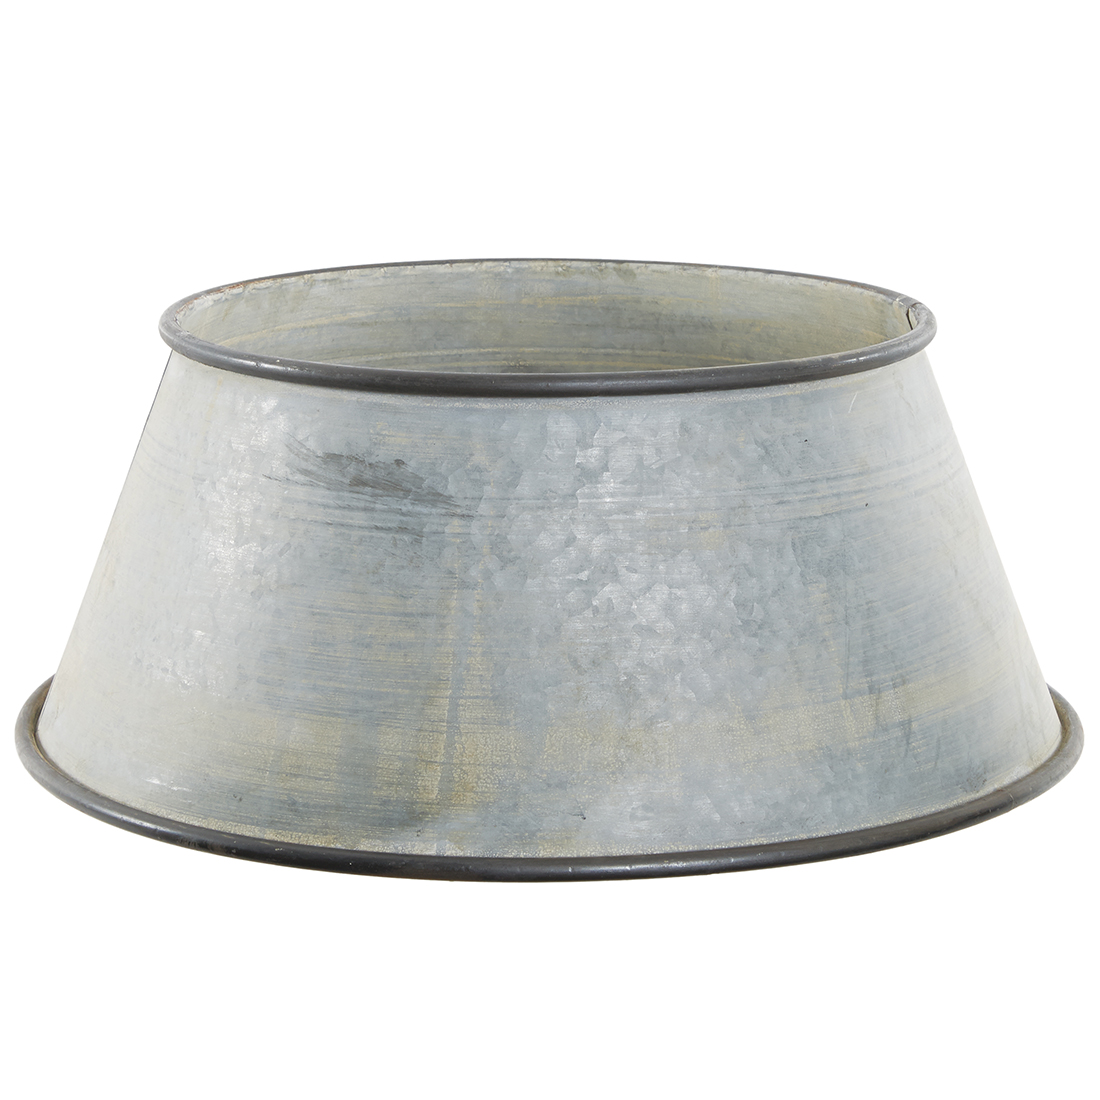 em_home-tobs-metal-grey-christmas-tree-round-cover-home-decor-24845